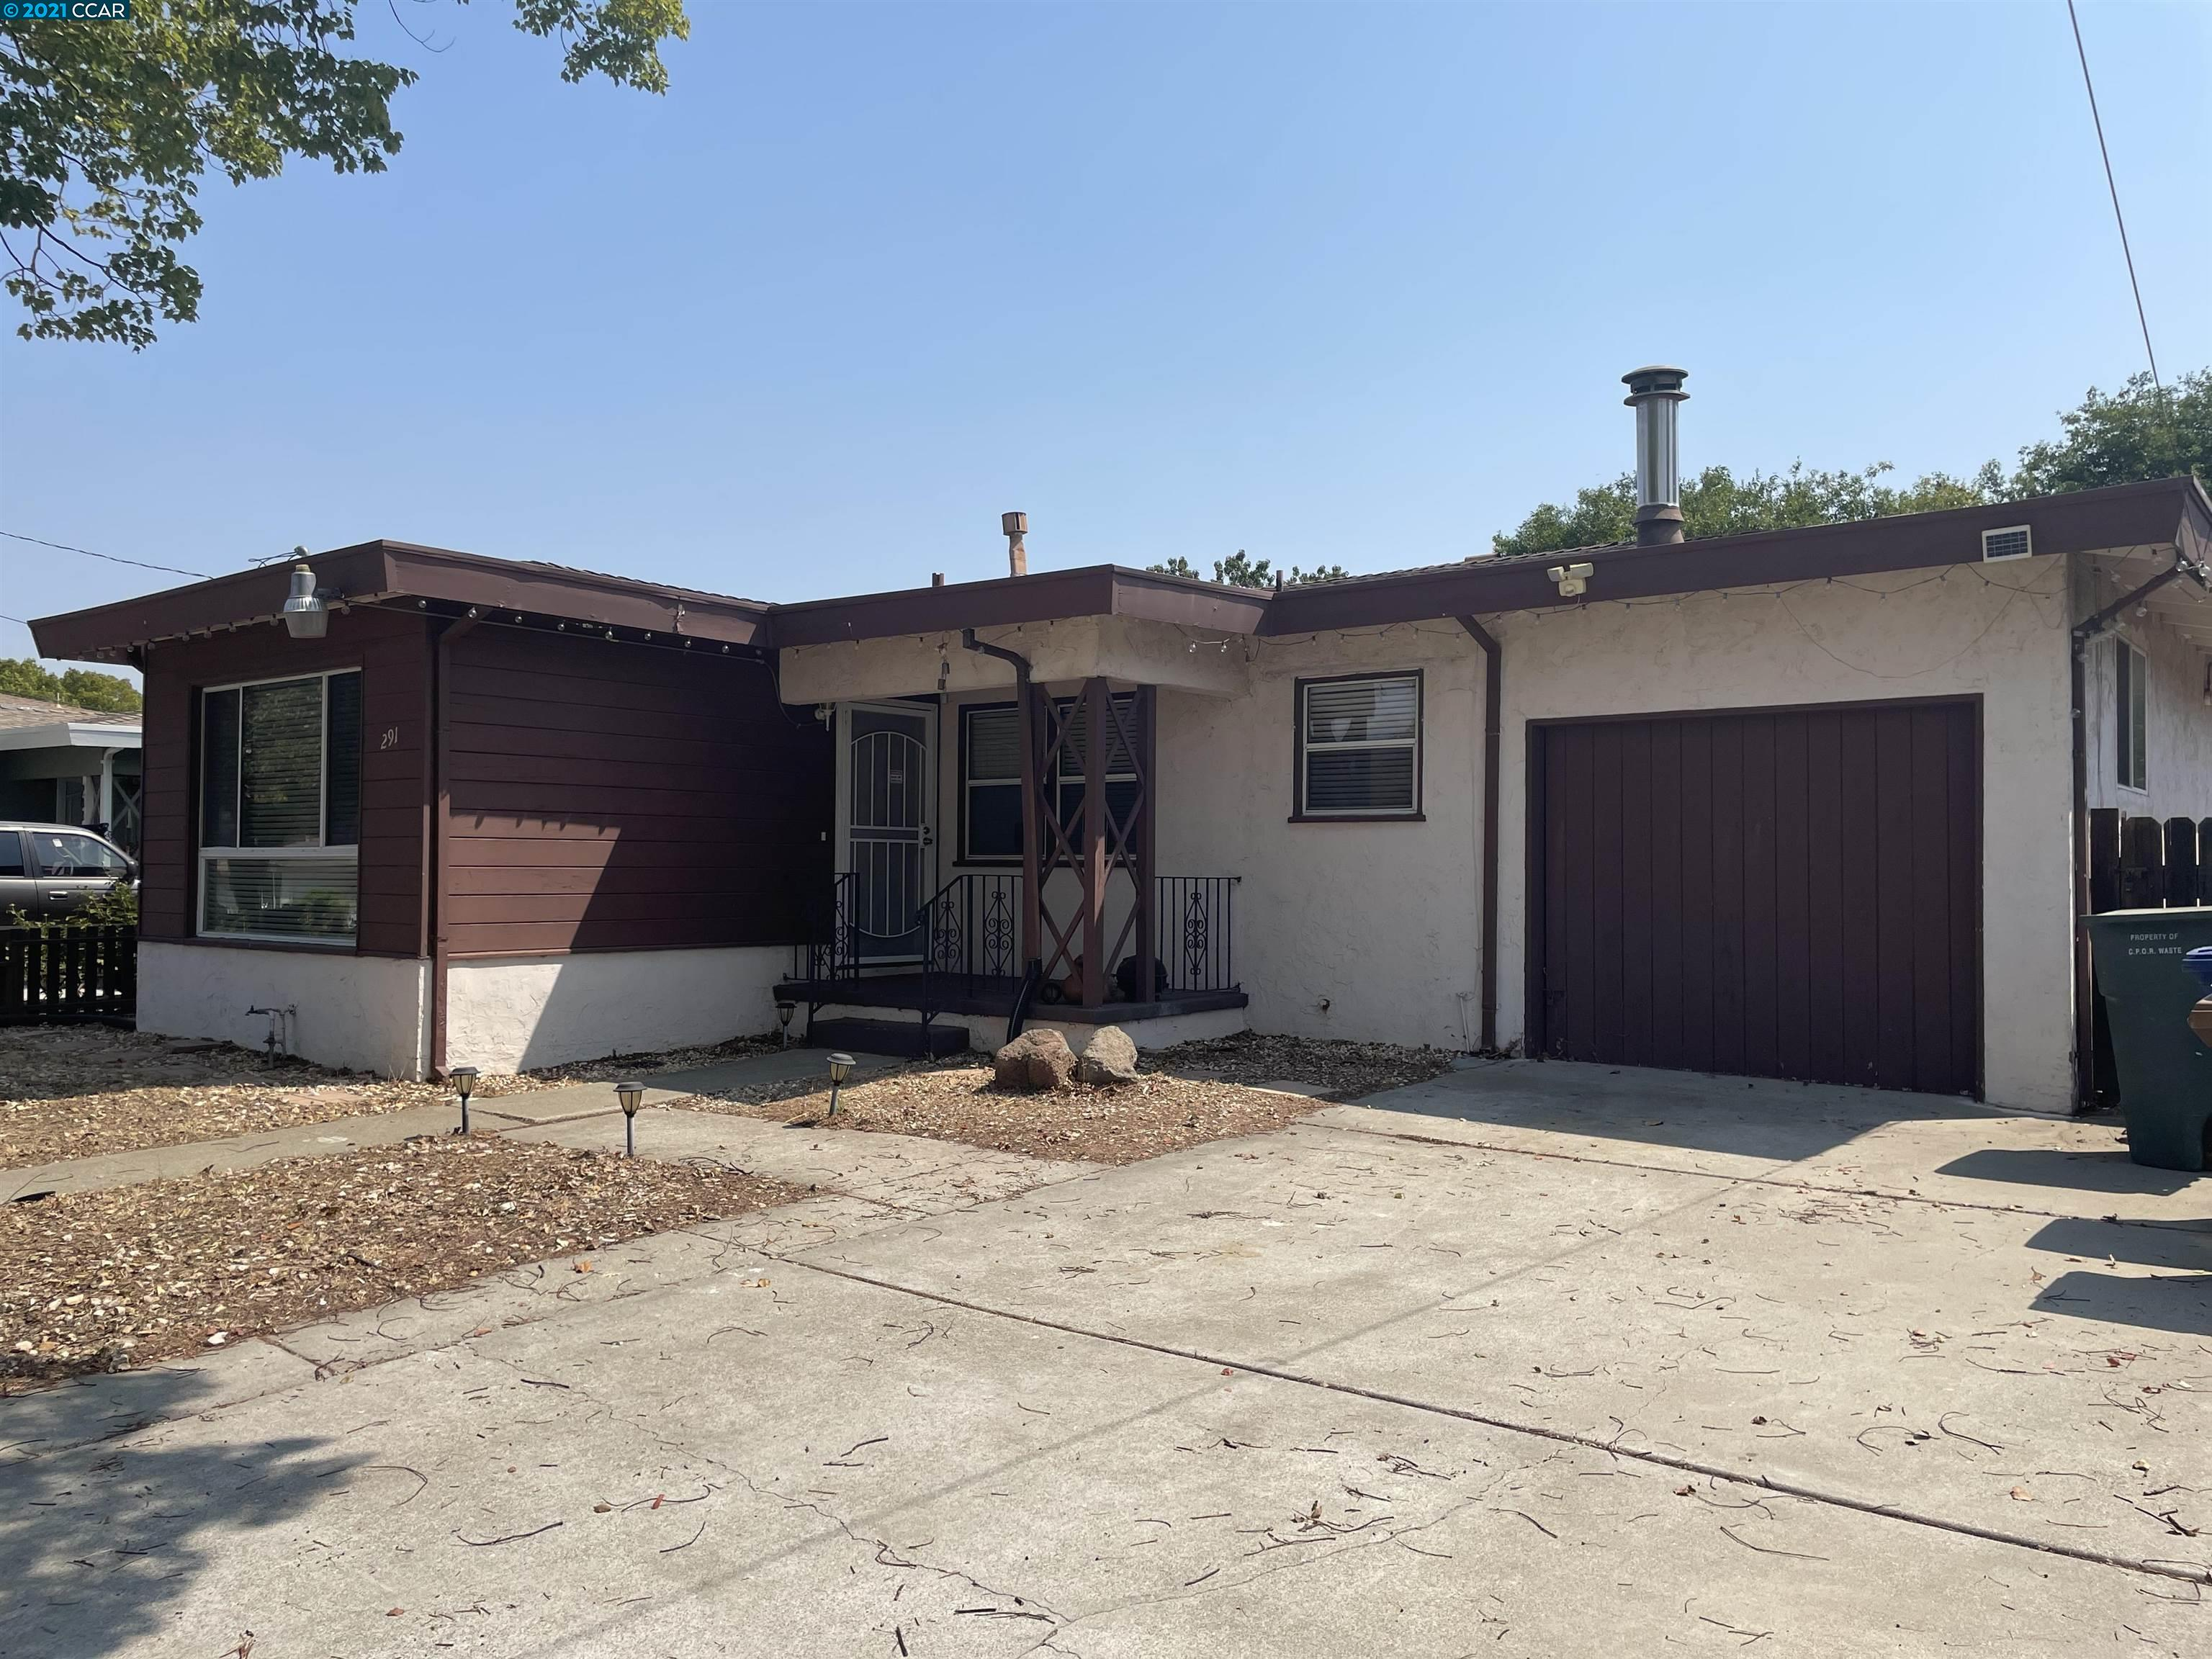 291 DiMaggio is a true gem! Move right in or upgrade the home for a brand new look and instant equity! Enjoy generously sized bedrooms including spacious bonus room, recently updated kitchen, wood floors and spacious back yard. Walking distance to BART, shopping, restaurants and more! Open house Sunday 9/12 from 2pm-4pm